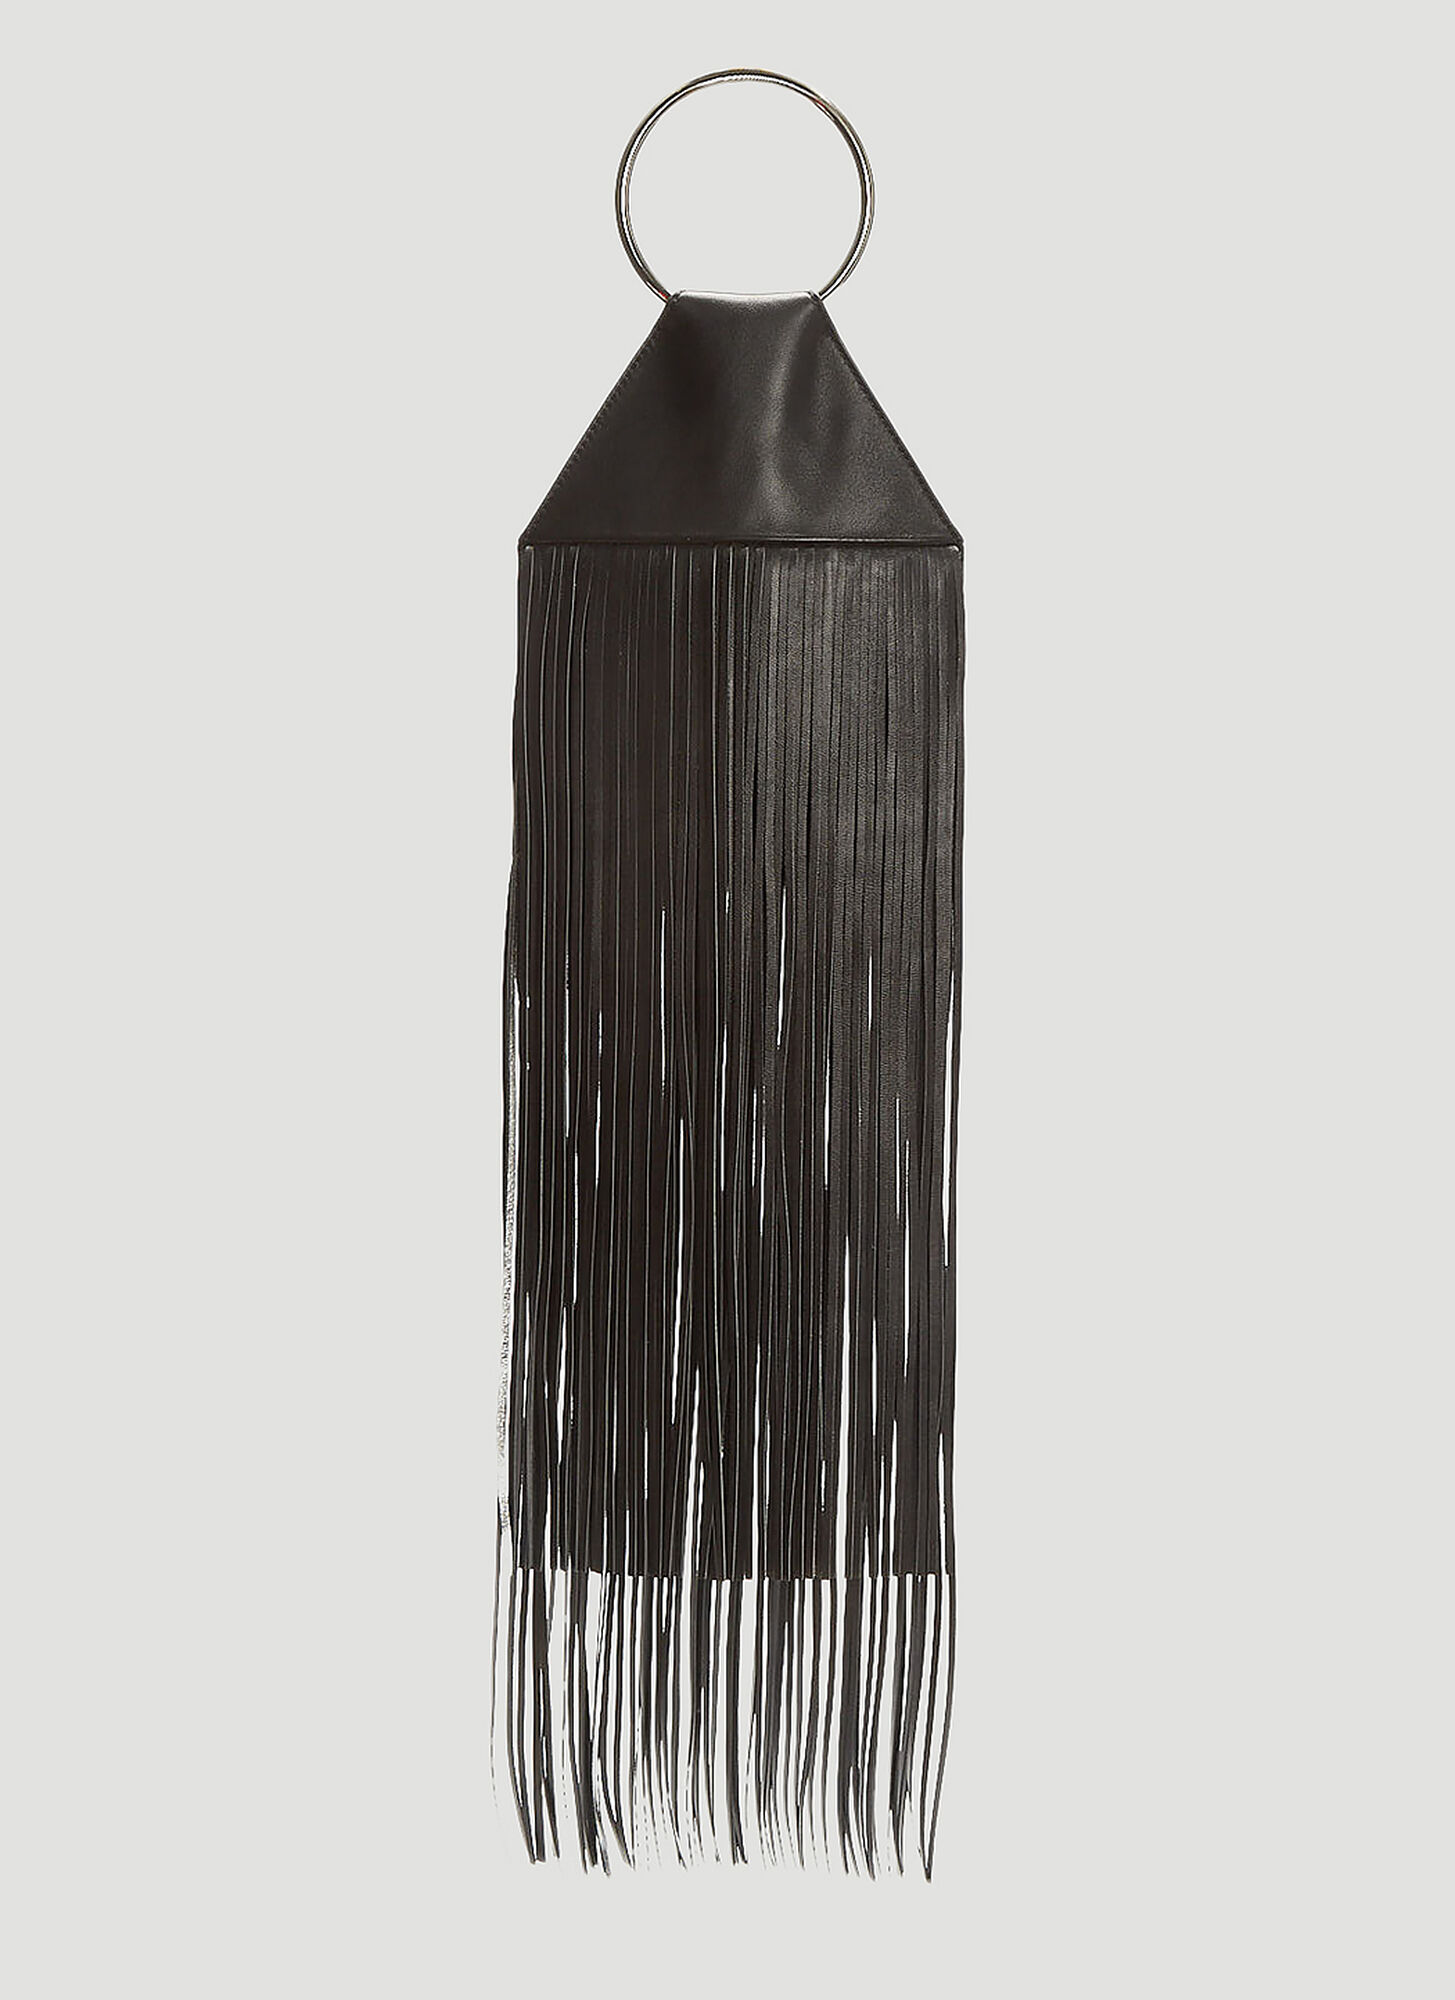 Kara Fringe Pouch Bag in Black